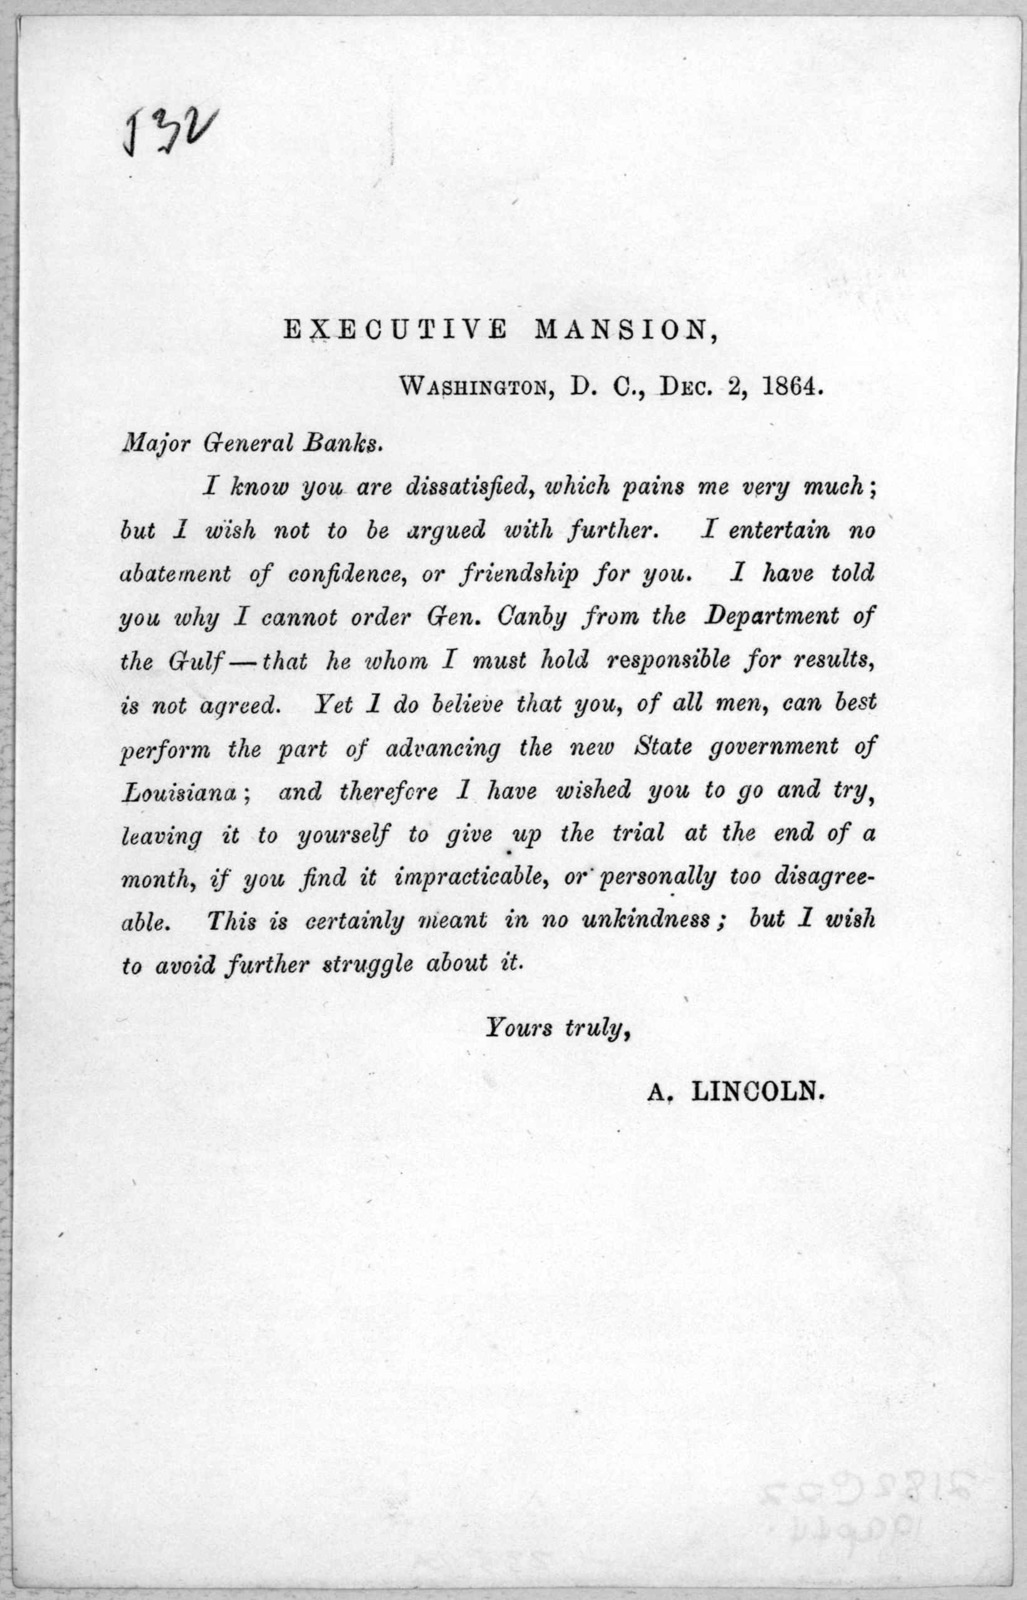 Executive mansion. Washington, D. C., Dec. 2, 1864. Major General Banks. I know you are dissatisfied, which pains me very much; but I wish not to be argued with further ... I have told you why I cannot order Gen. Canby from the Department of the